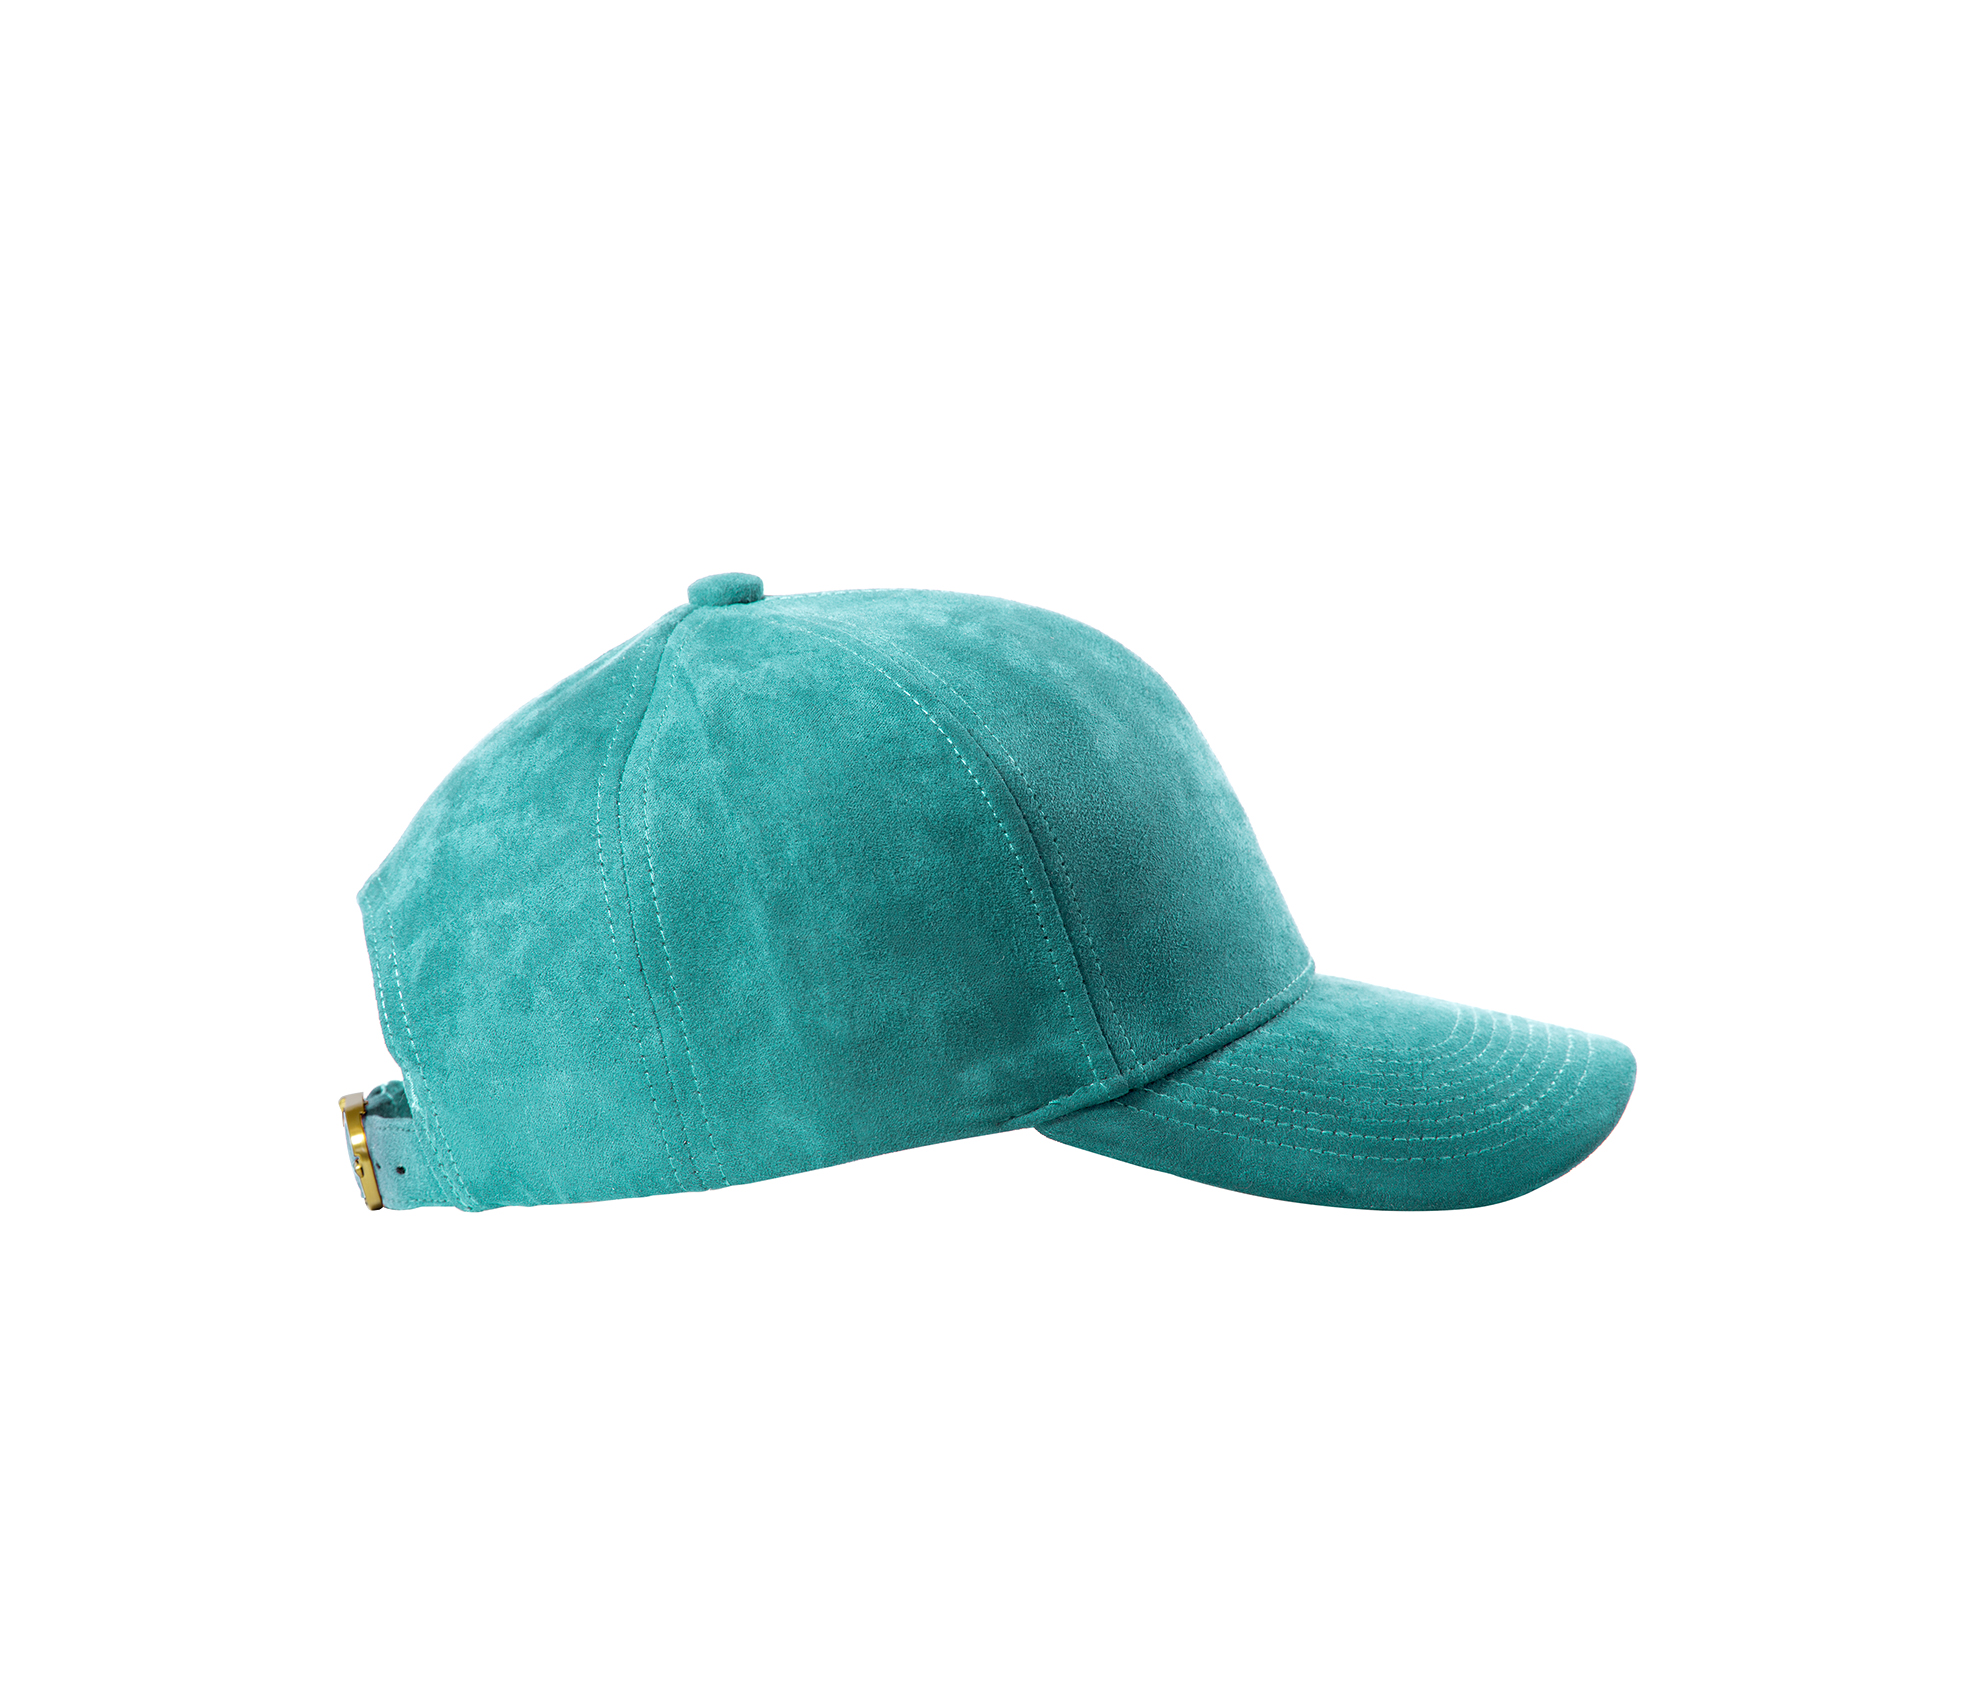 BASEBALL CAP TURQUOISE GOLD SUEDE SIDE